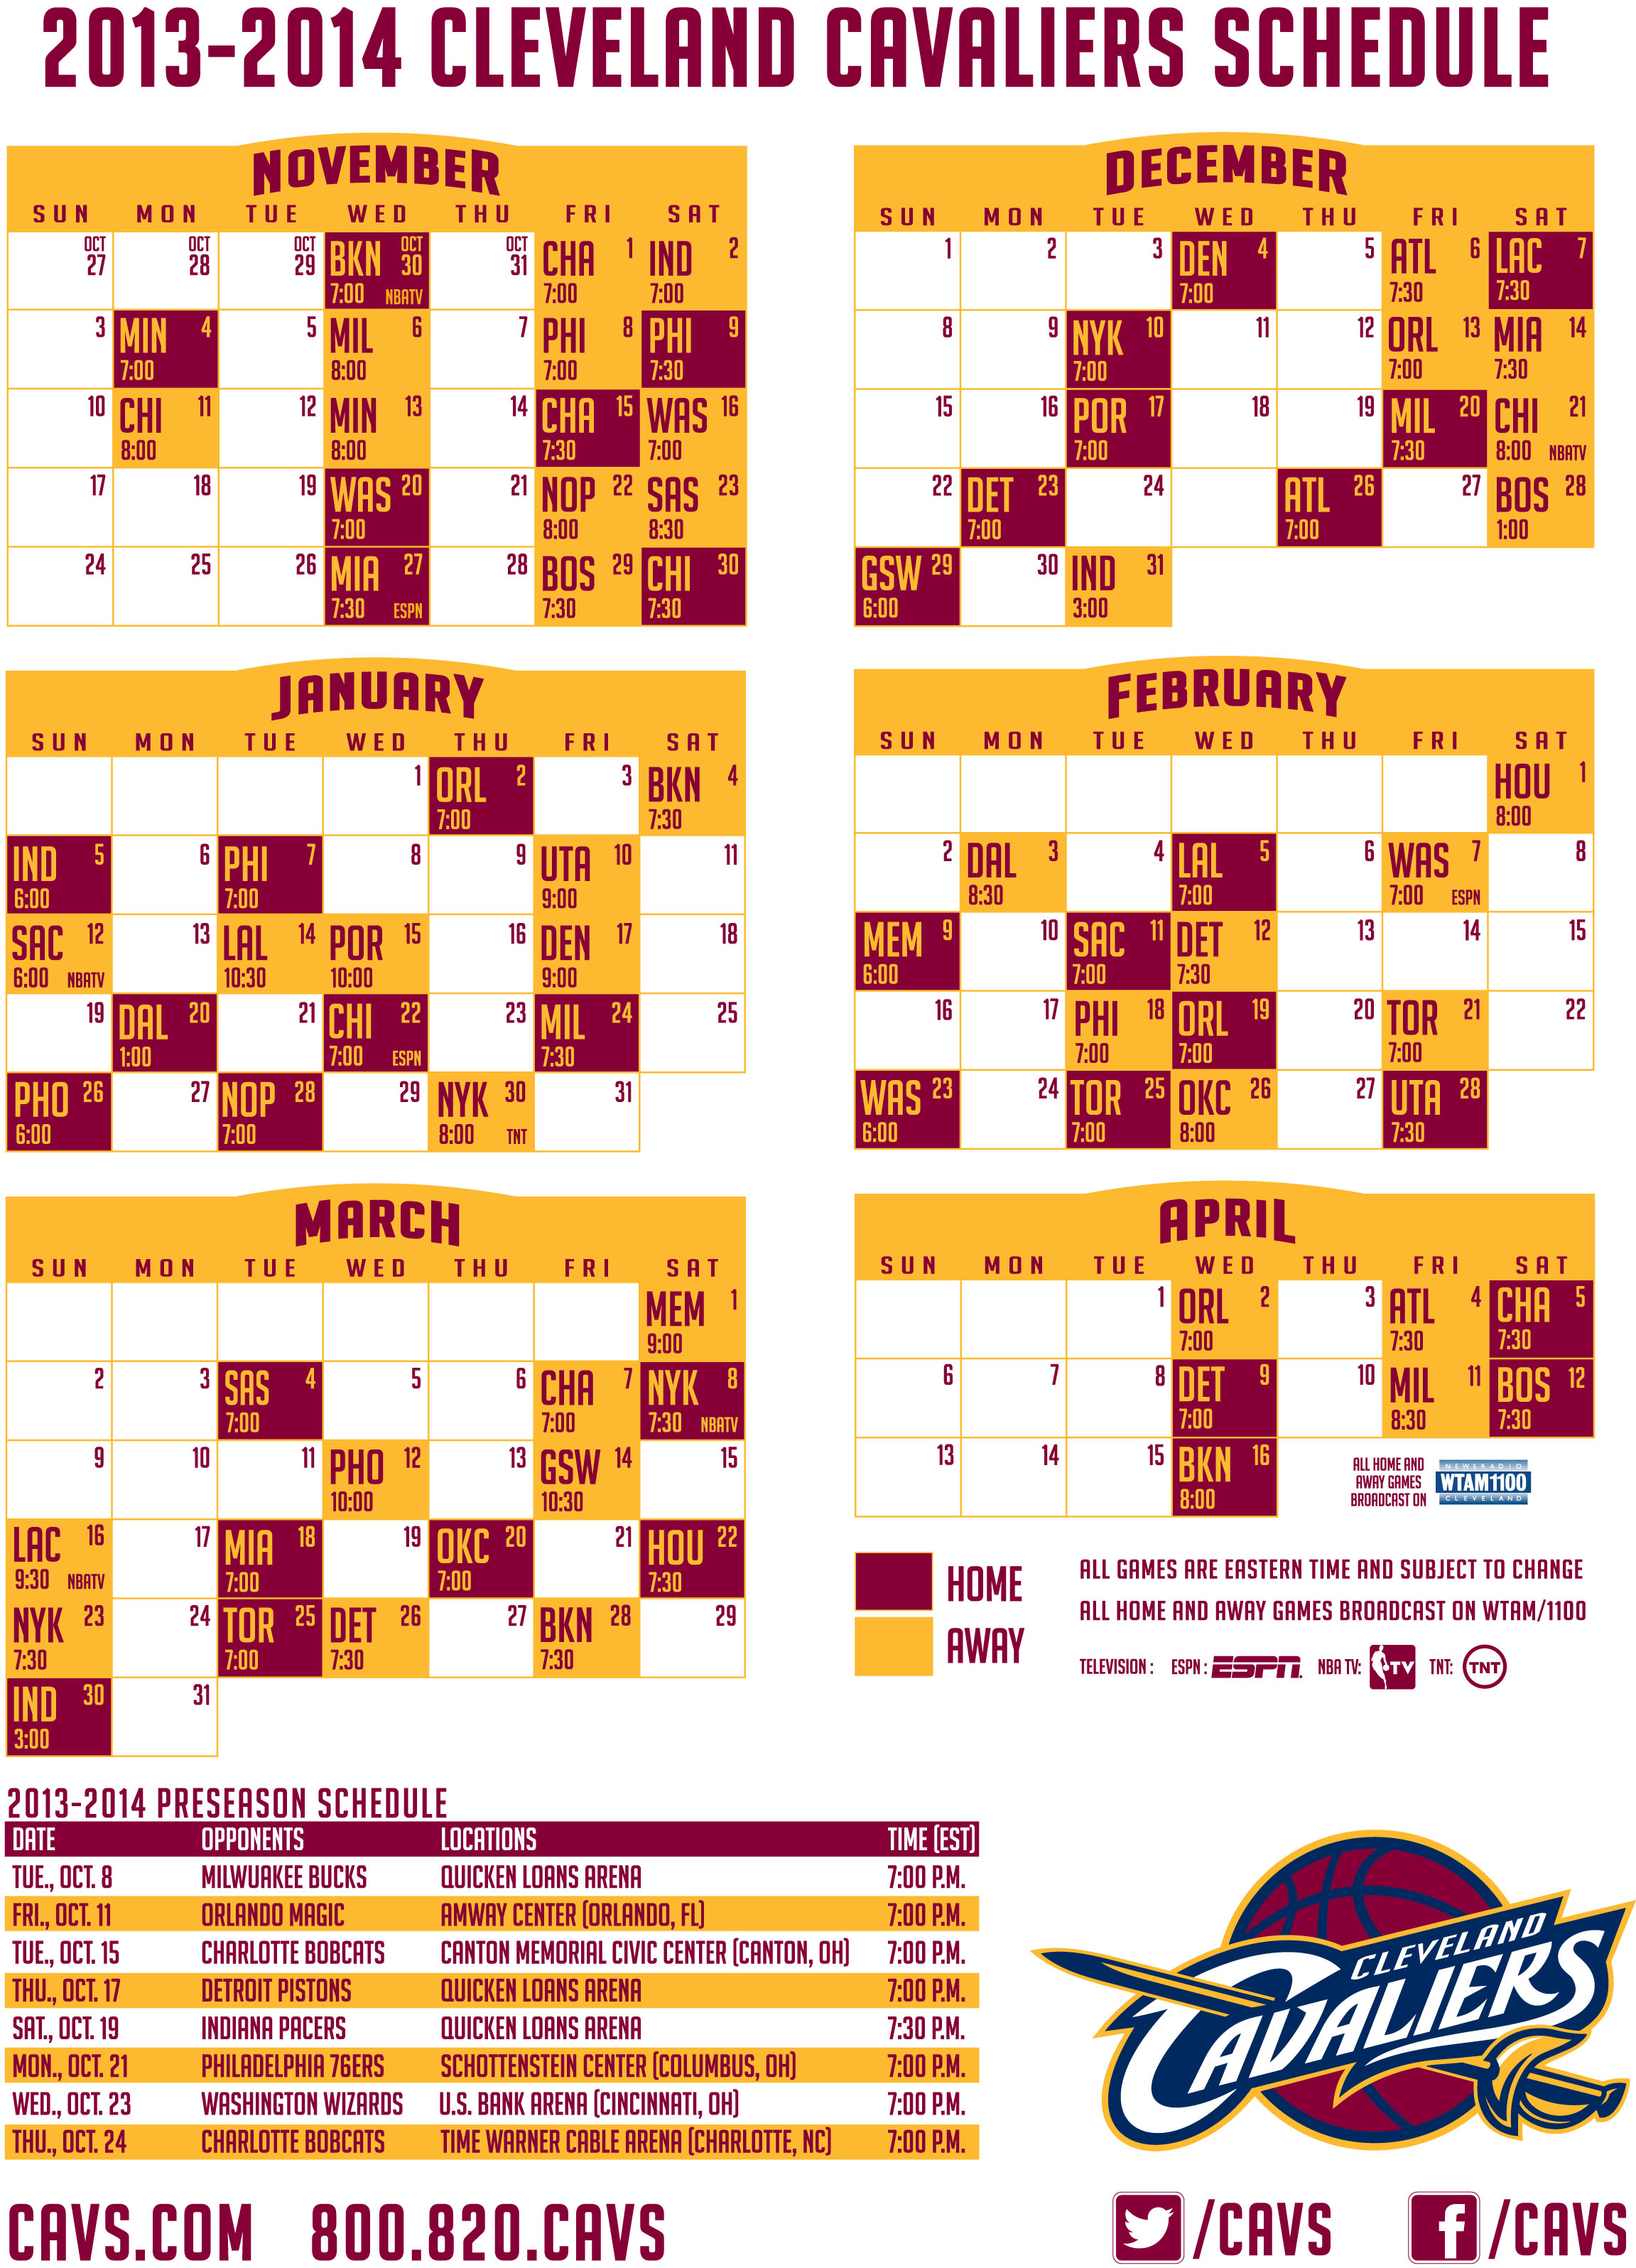 photograph relating to Cleveland Cavaliers Printable Schedule identify 2013-2014 Cleveland Cavaliers Plan - WEOL Radio 930 AM